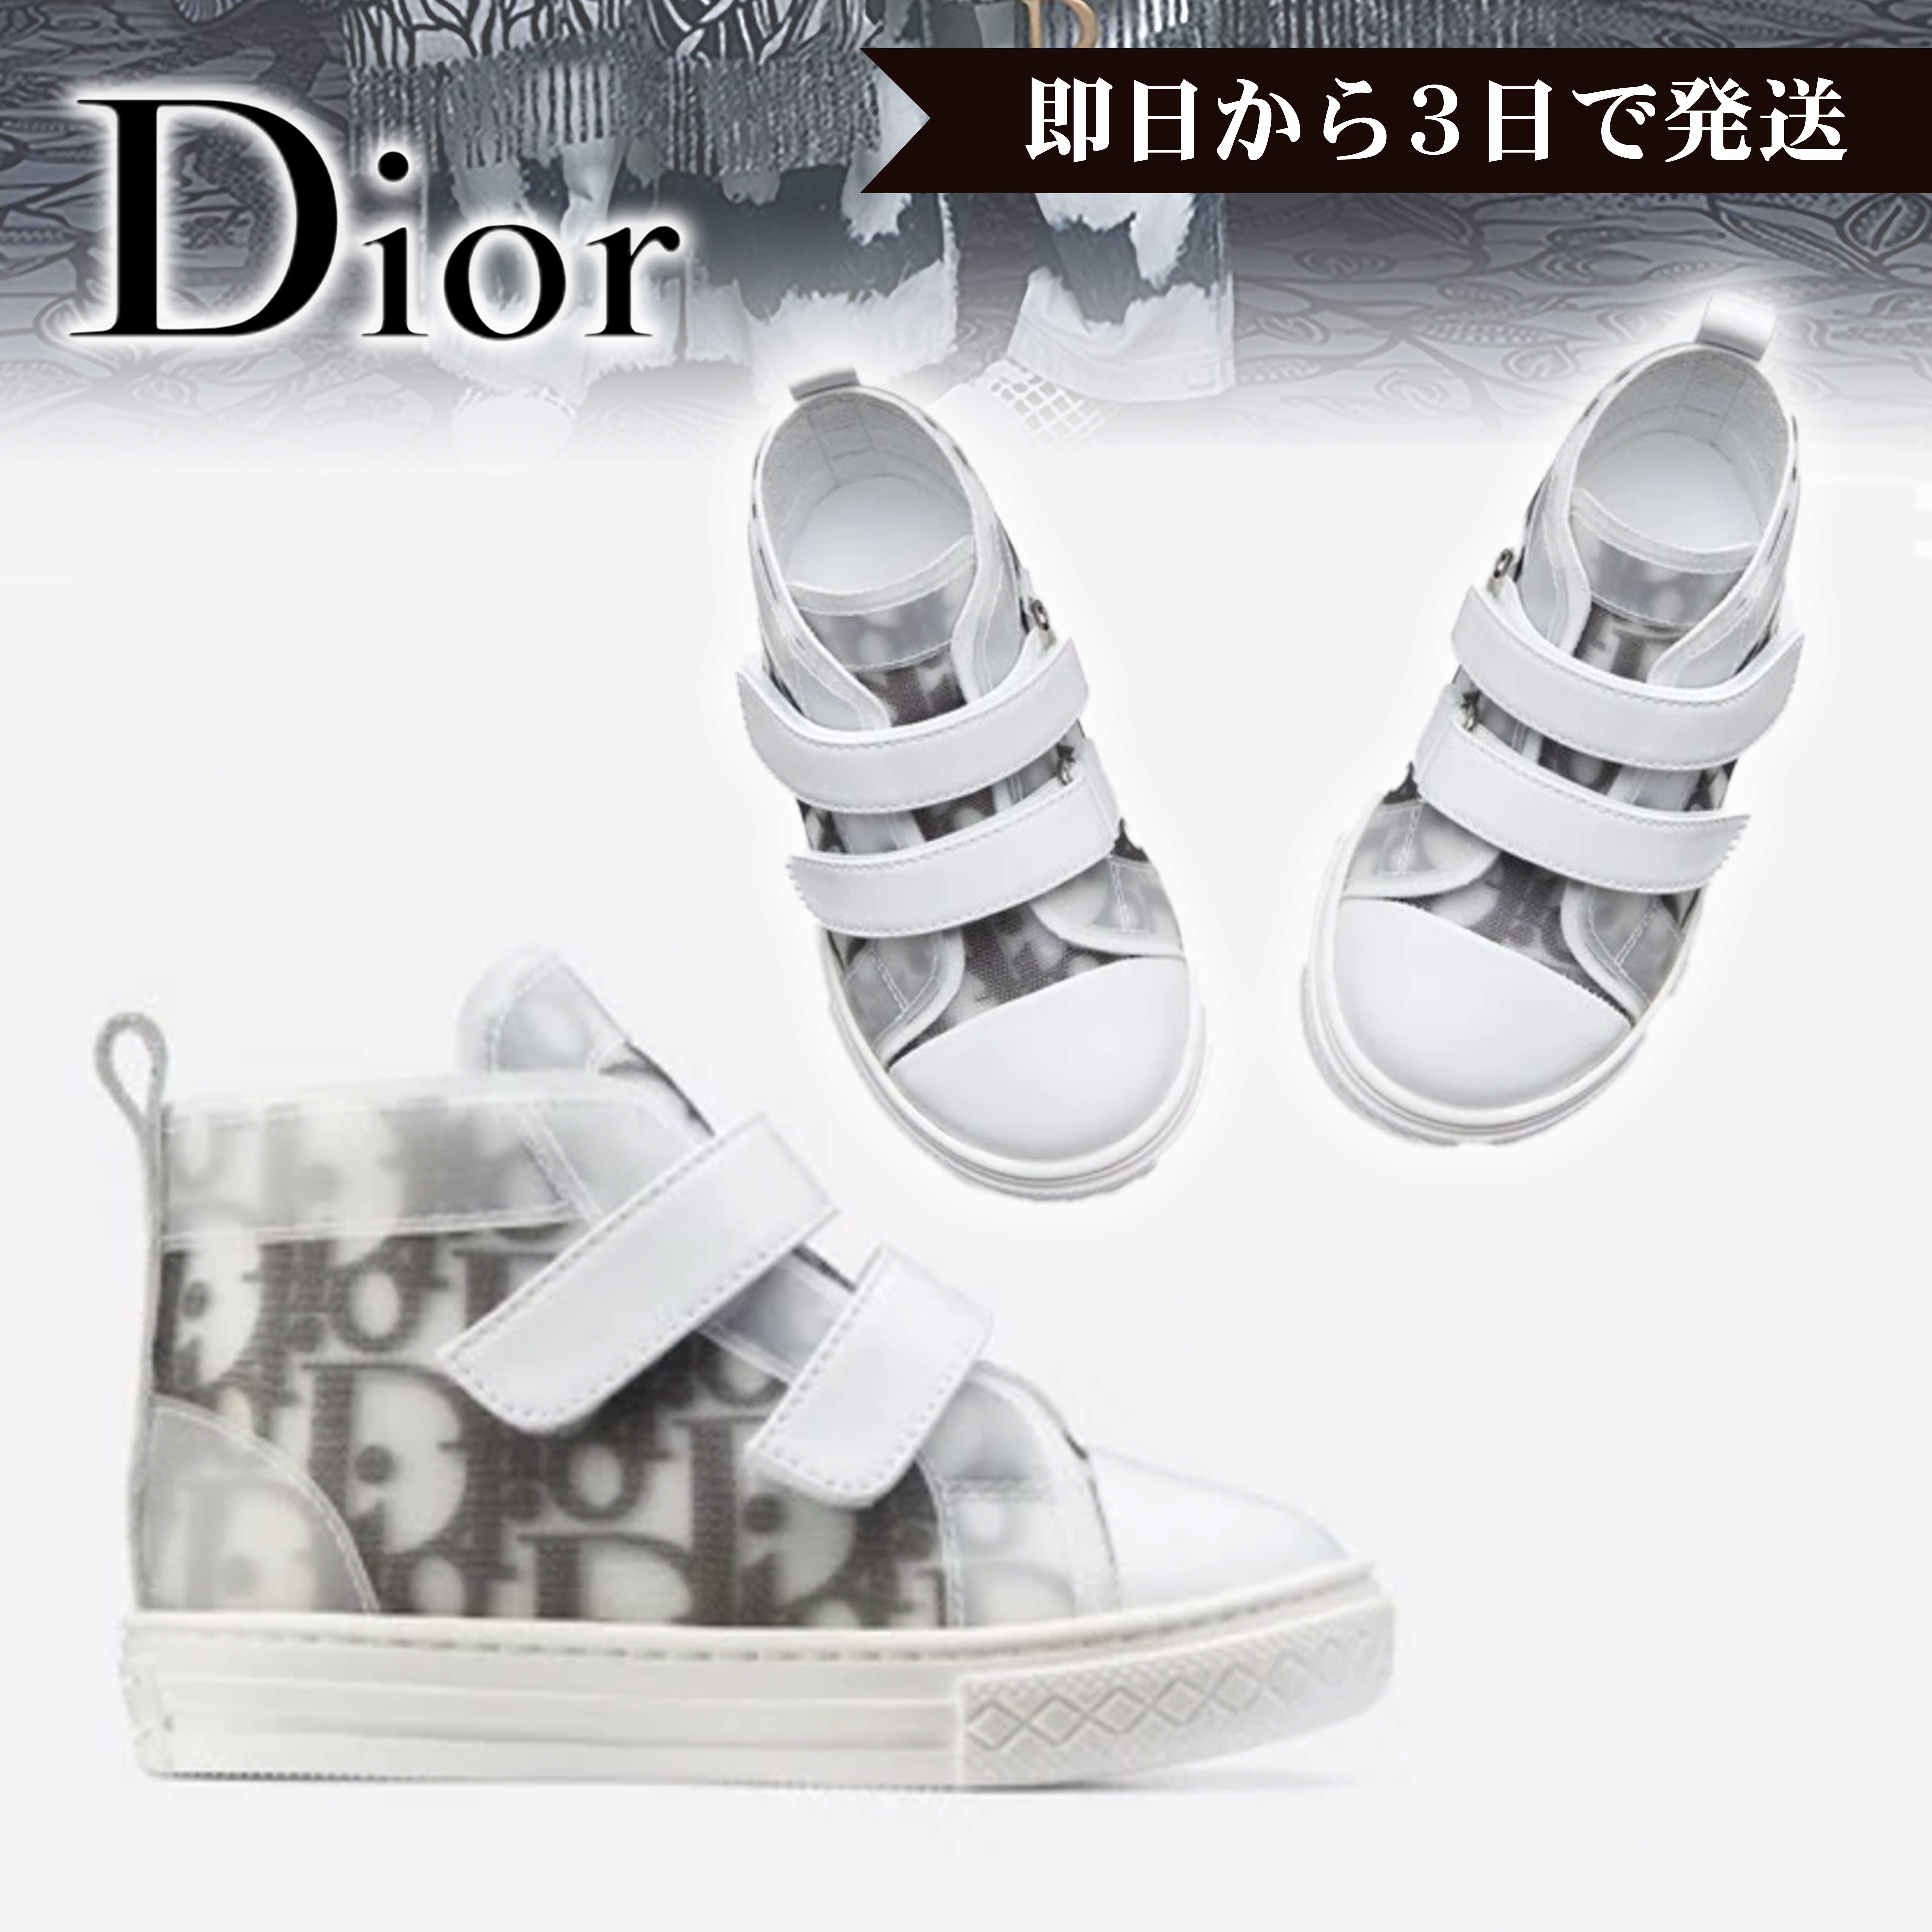 dior baby girl shoes - 50% OFF - awi.com